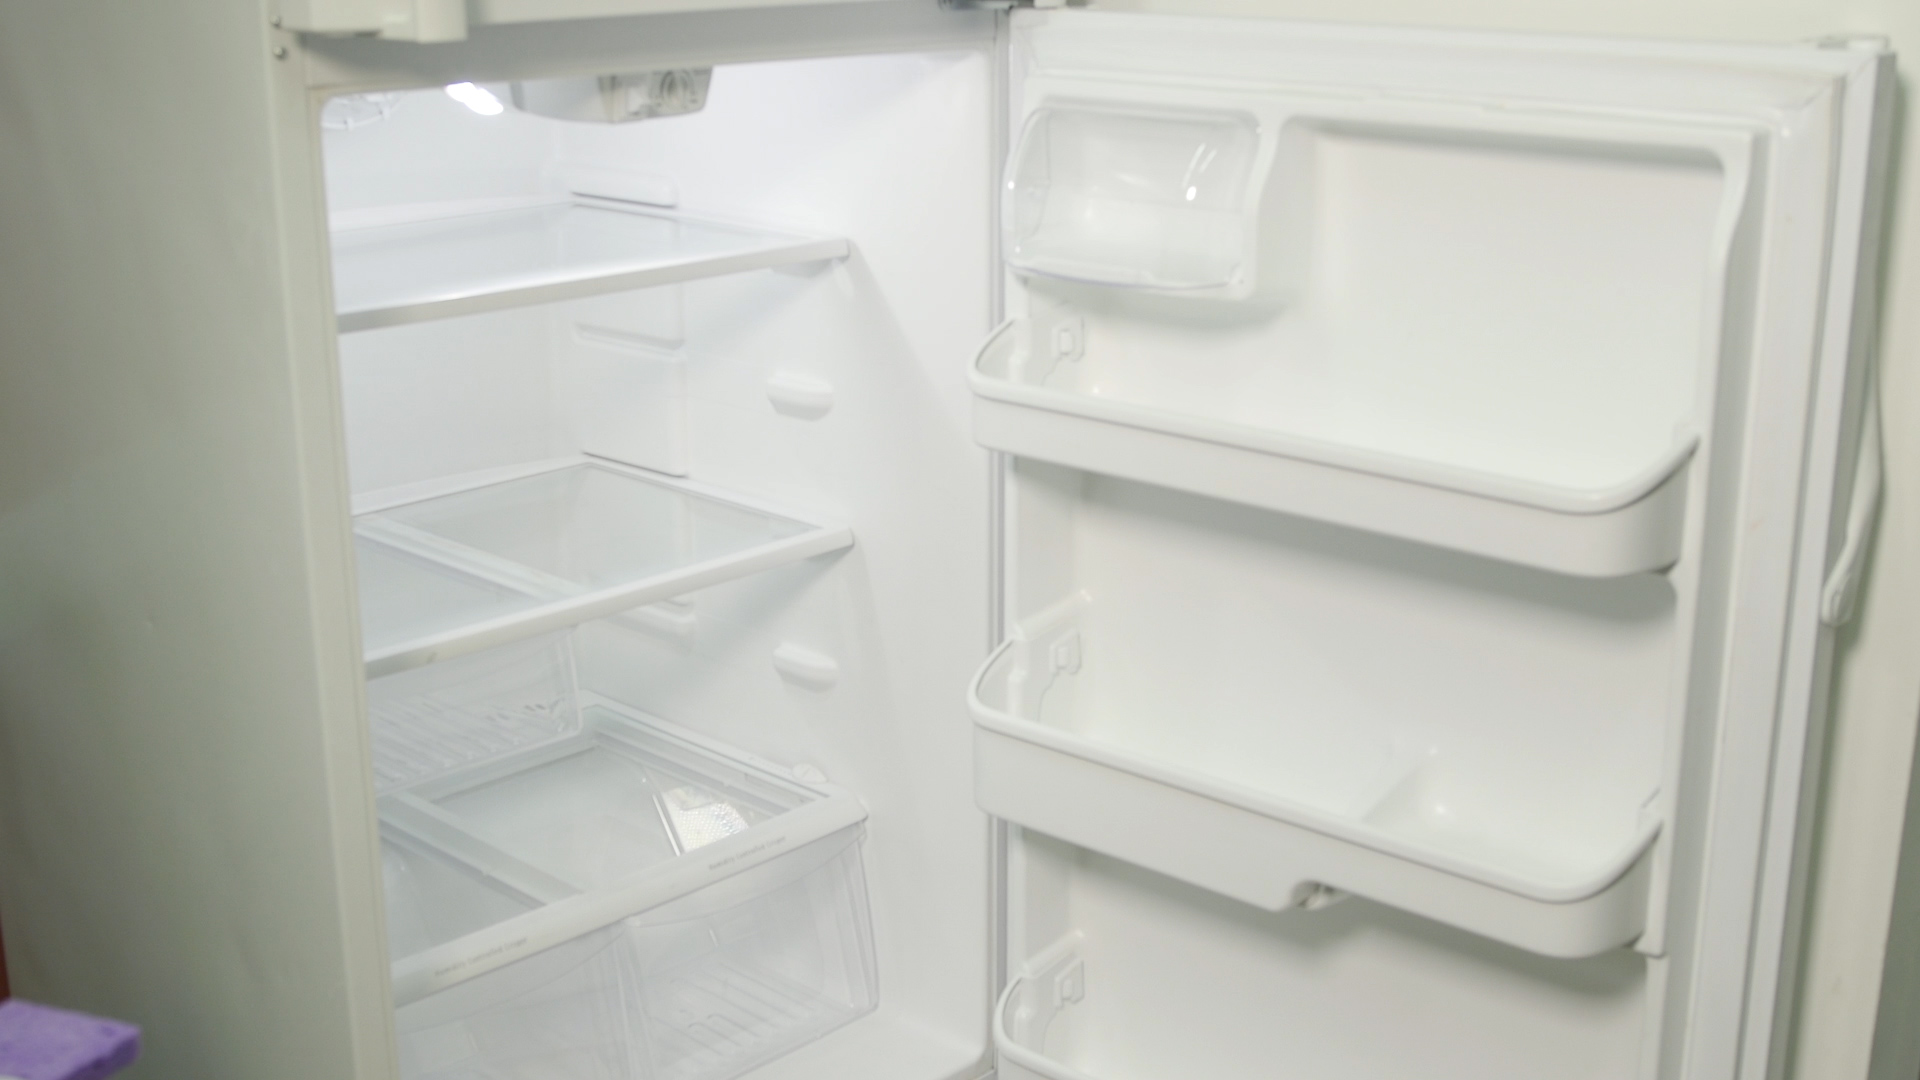 & How to Get Rid of Funky Refrigerator Smells - Consumer Reports